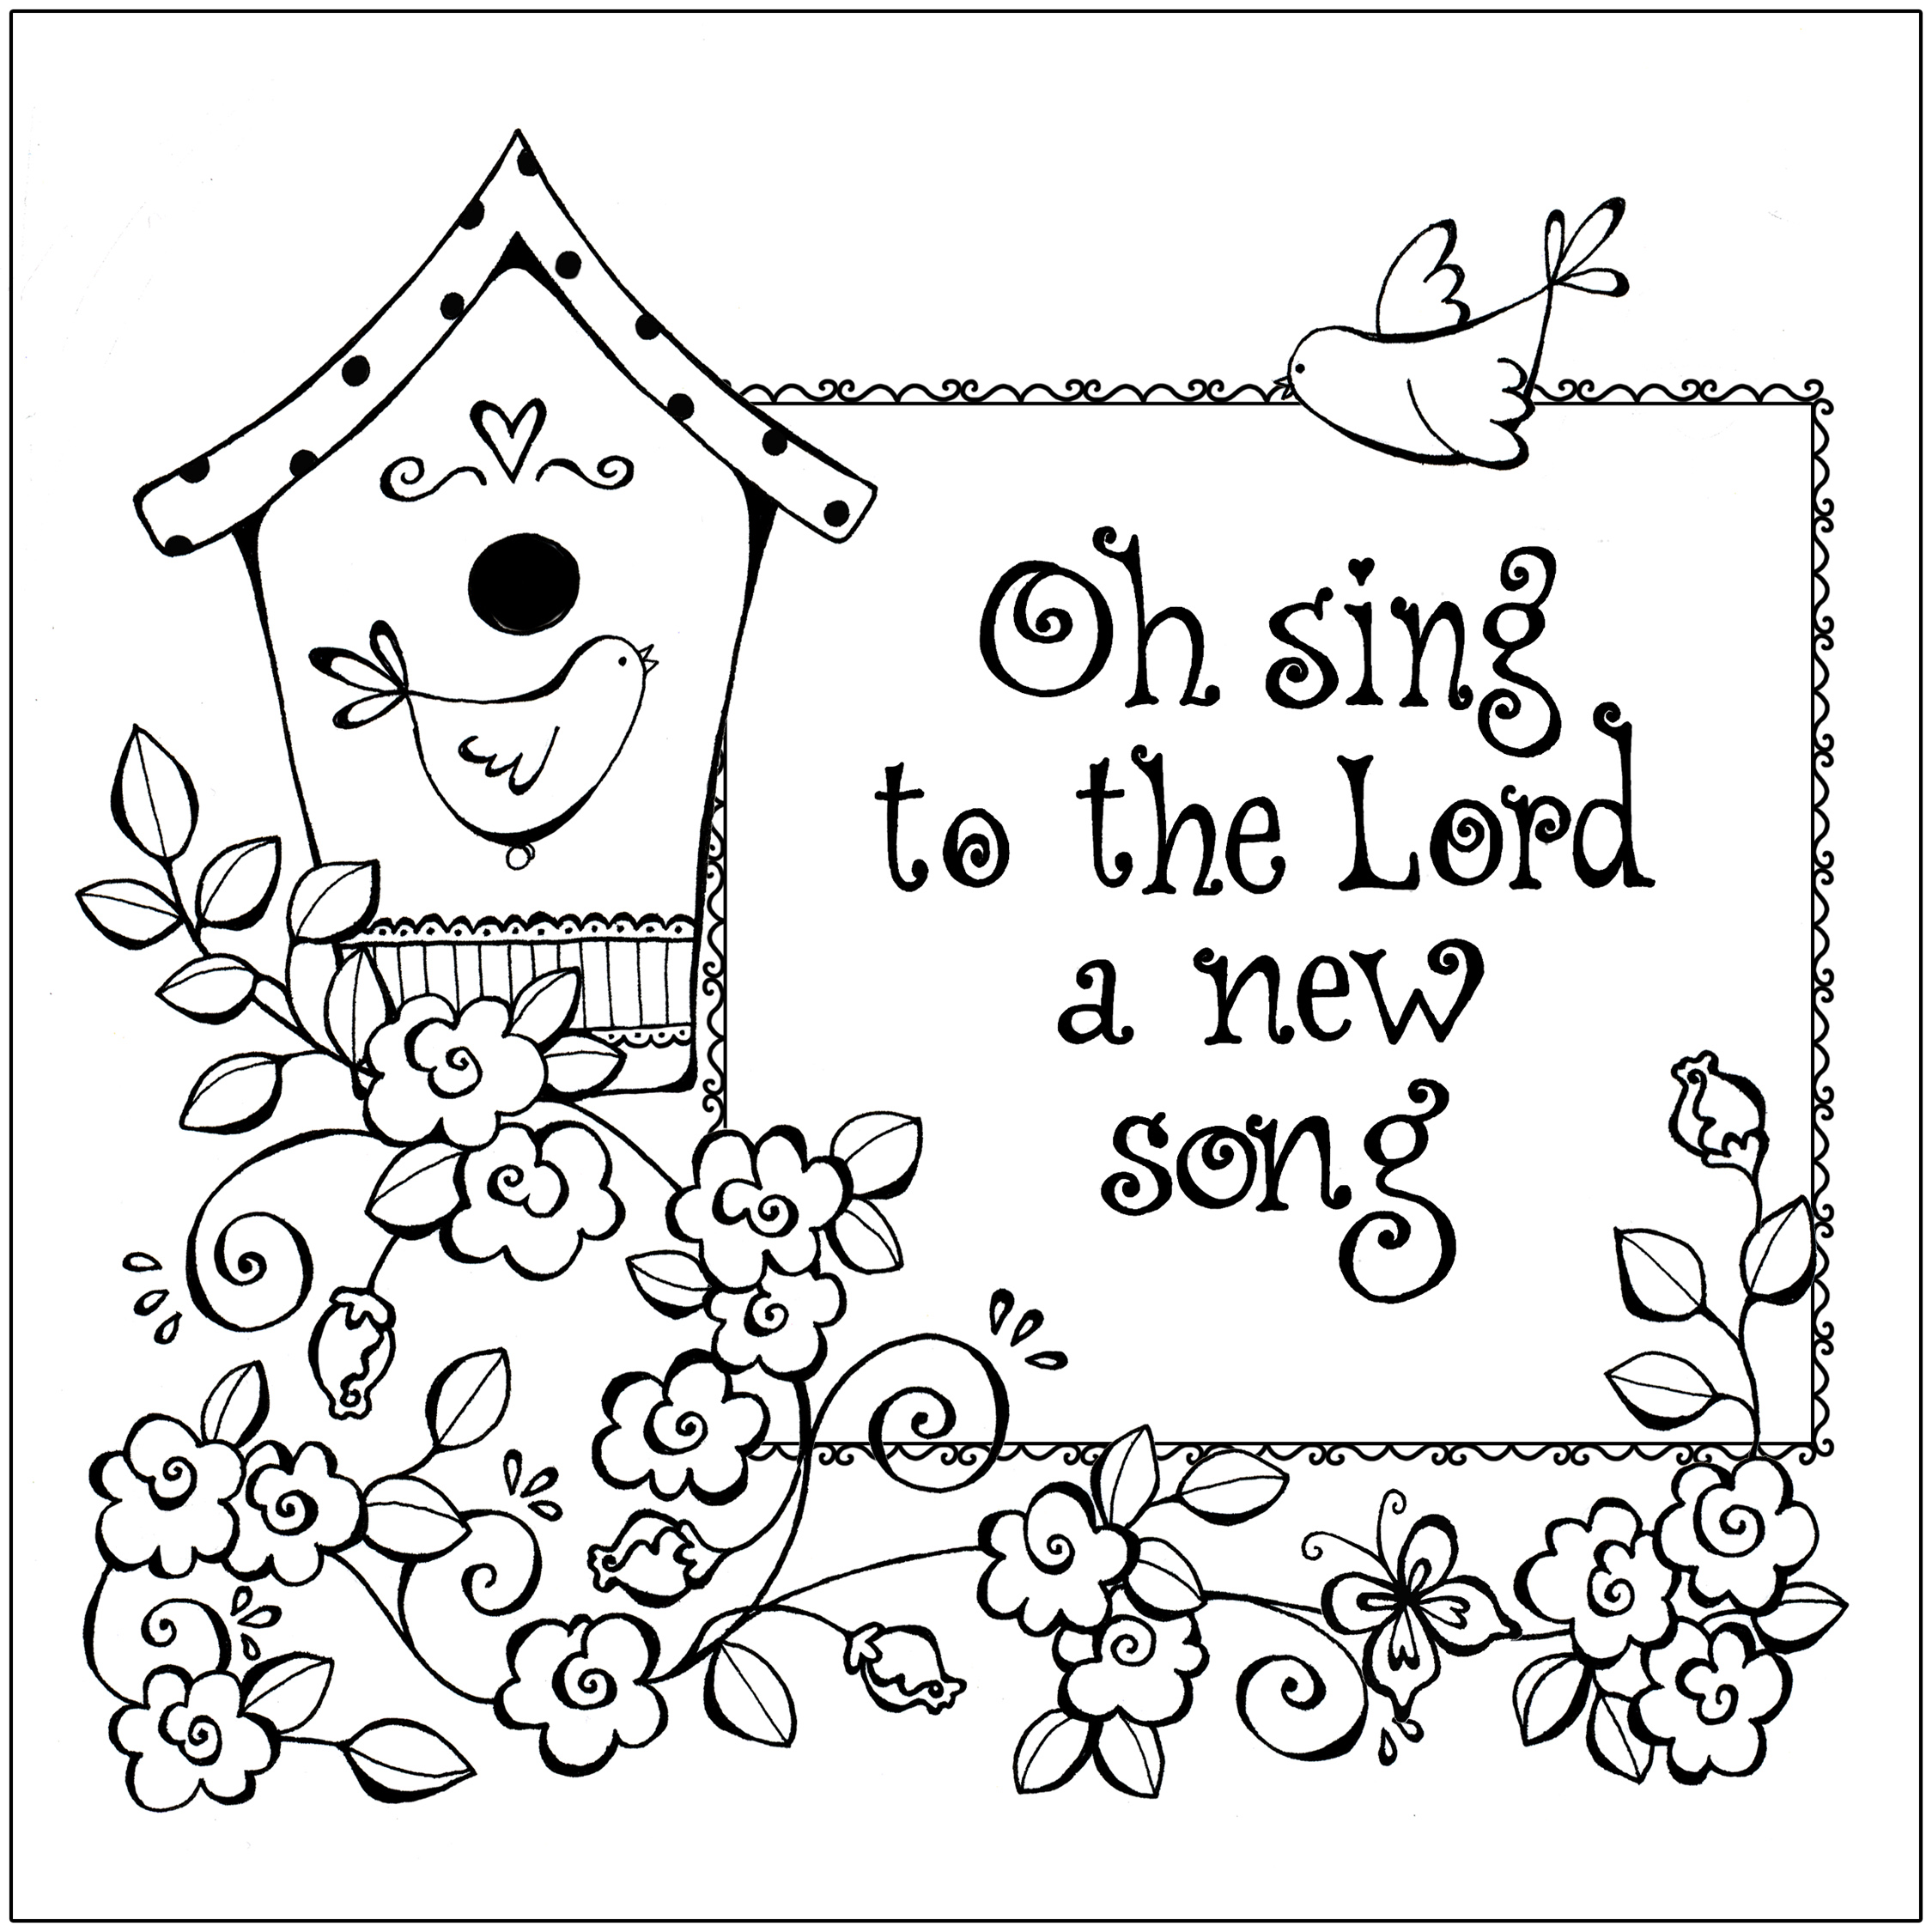 free printable christian coloring pages - photo#2